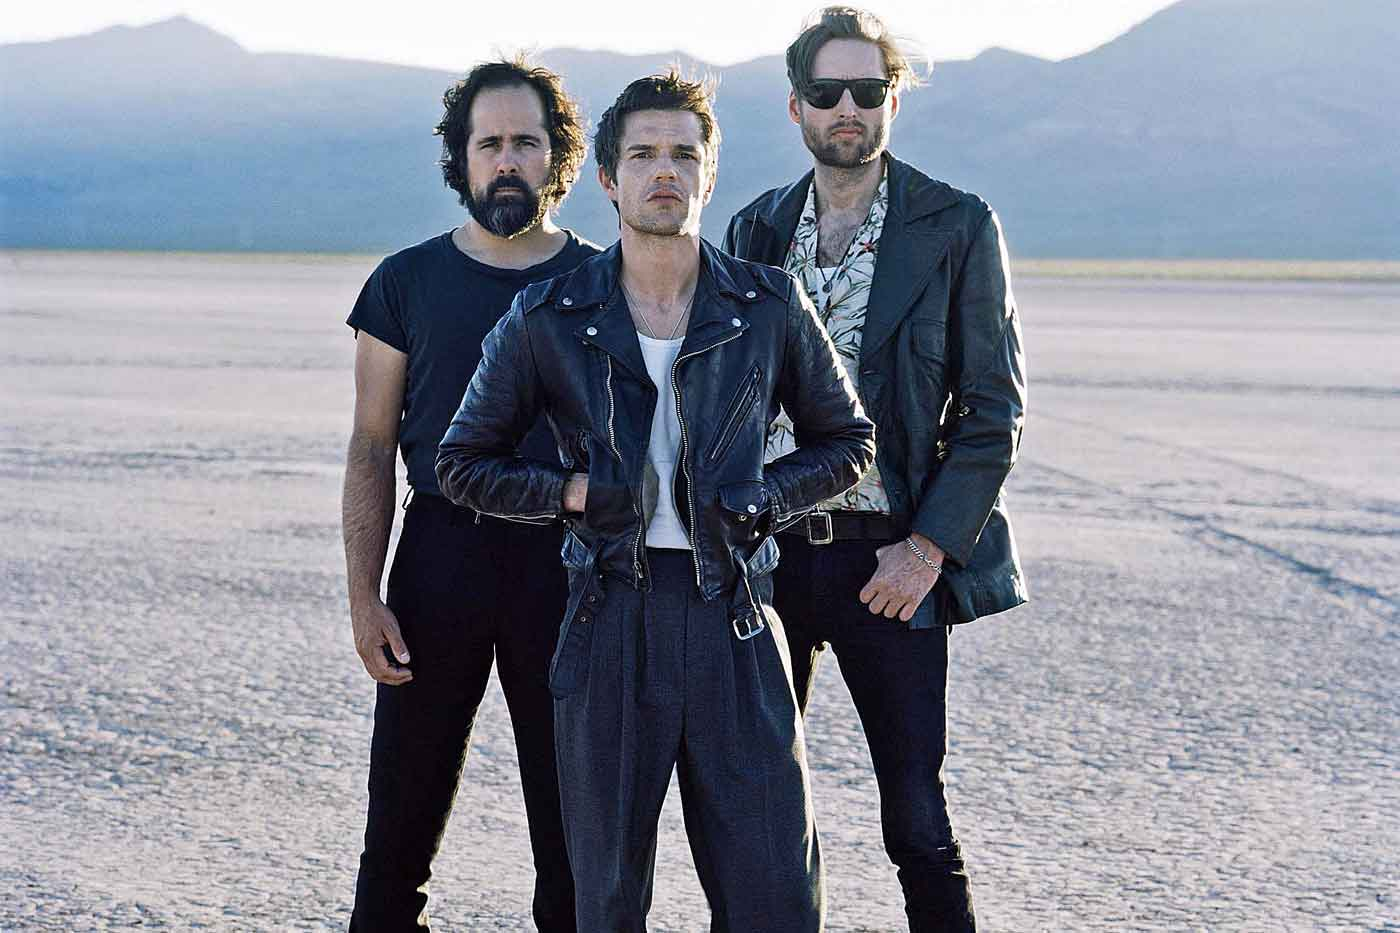 Novedades del Mad Cool 2020: Kings of Leon, The Killers y cartel por días